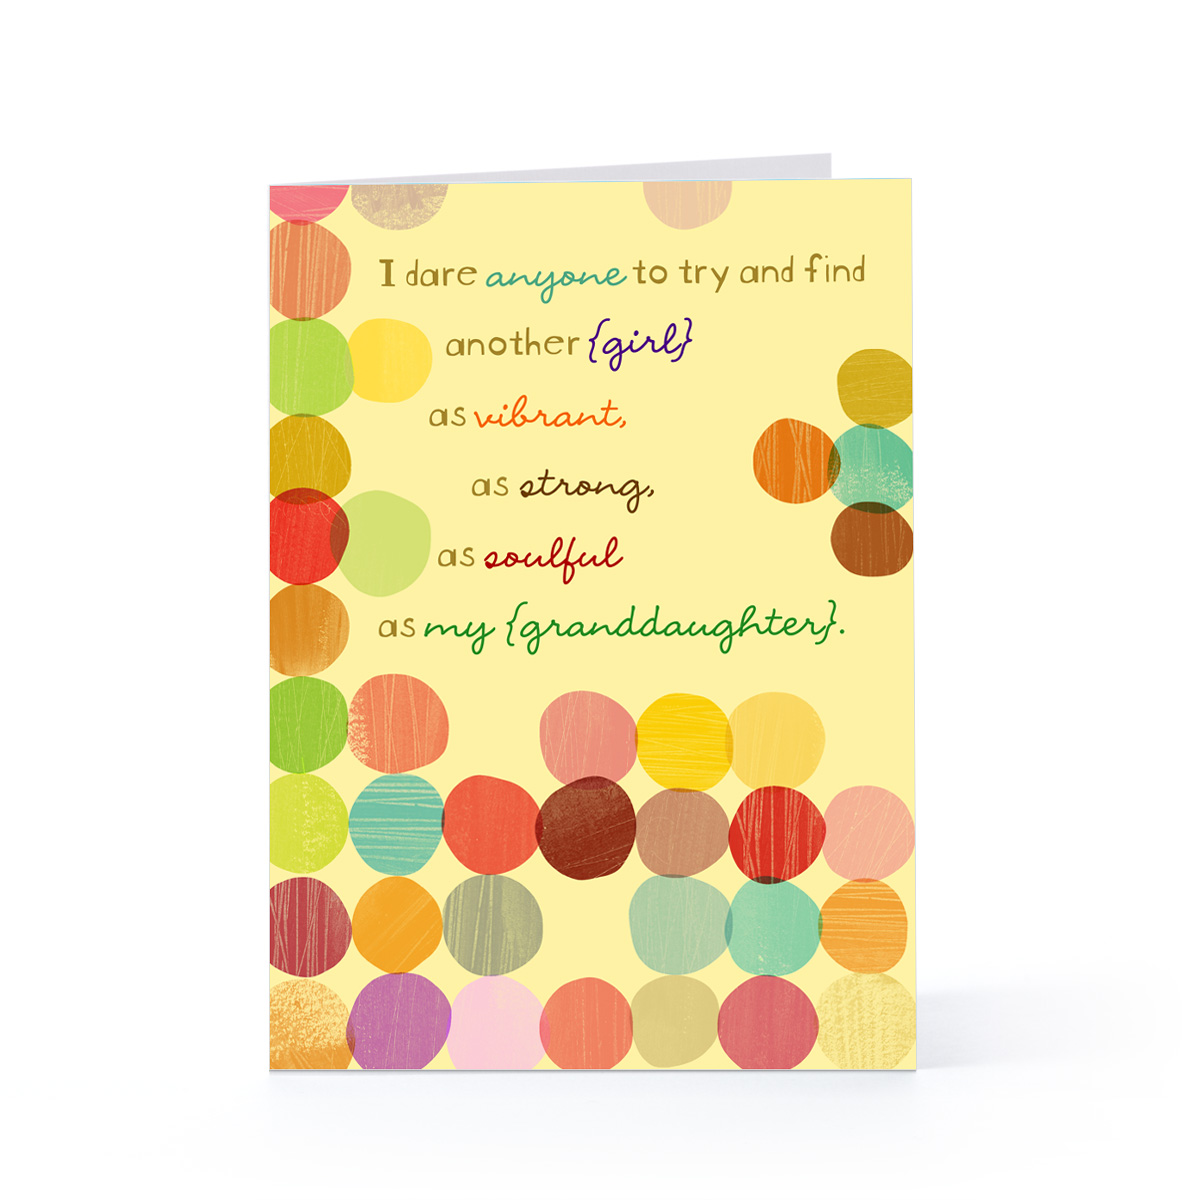 hallmark birthday quotes quotesgram